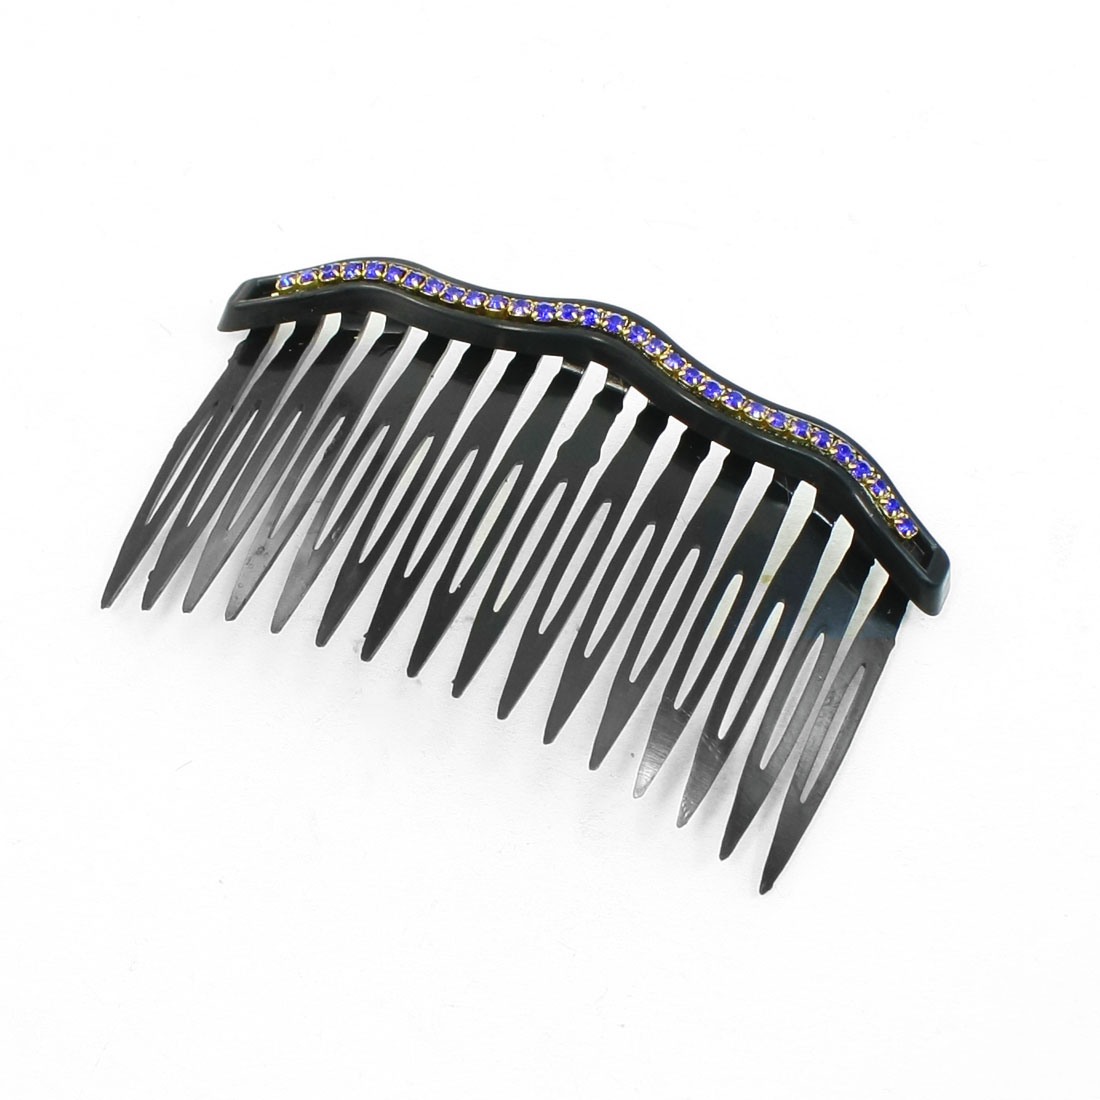 Blue Rhinestone Decor Plastic Black Comb Hair Clip for Ladies Girls